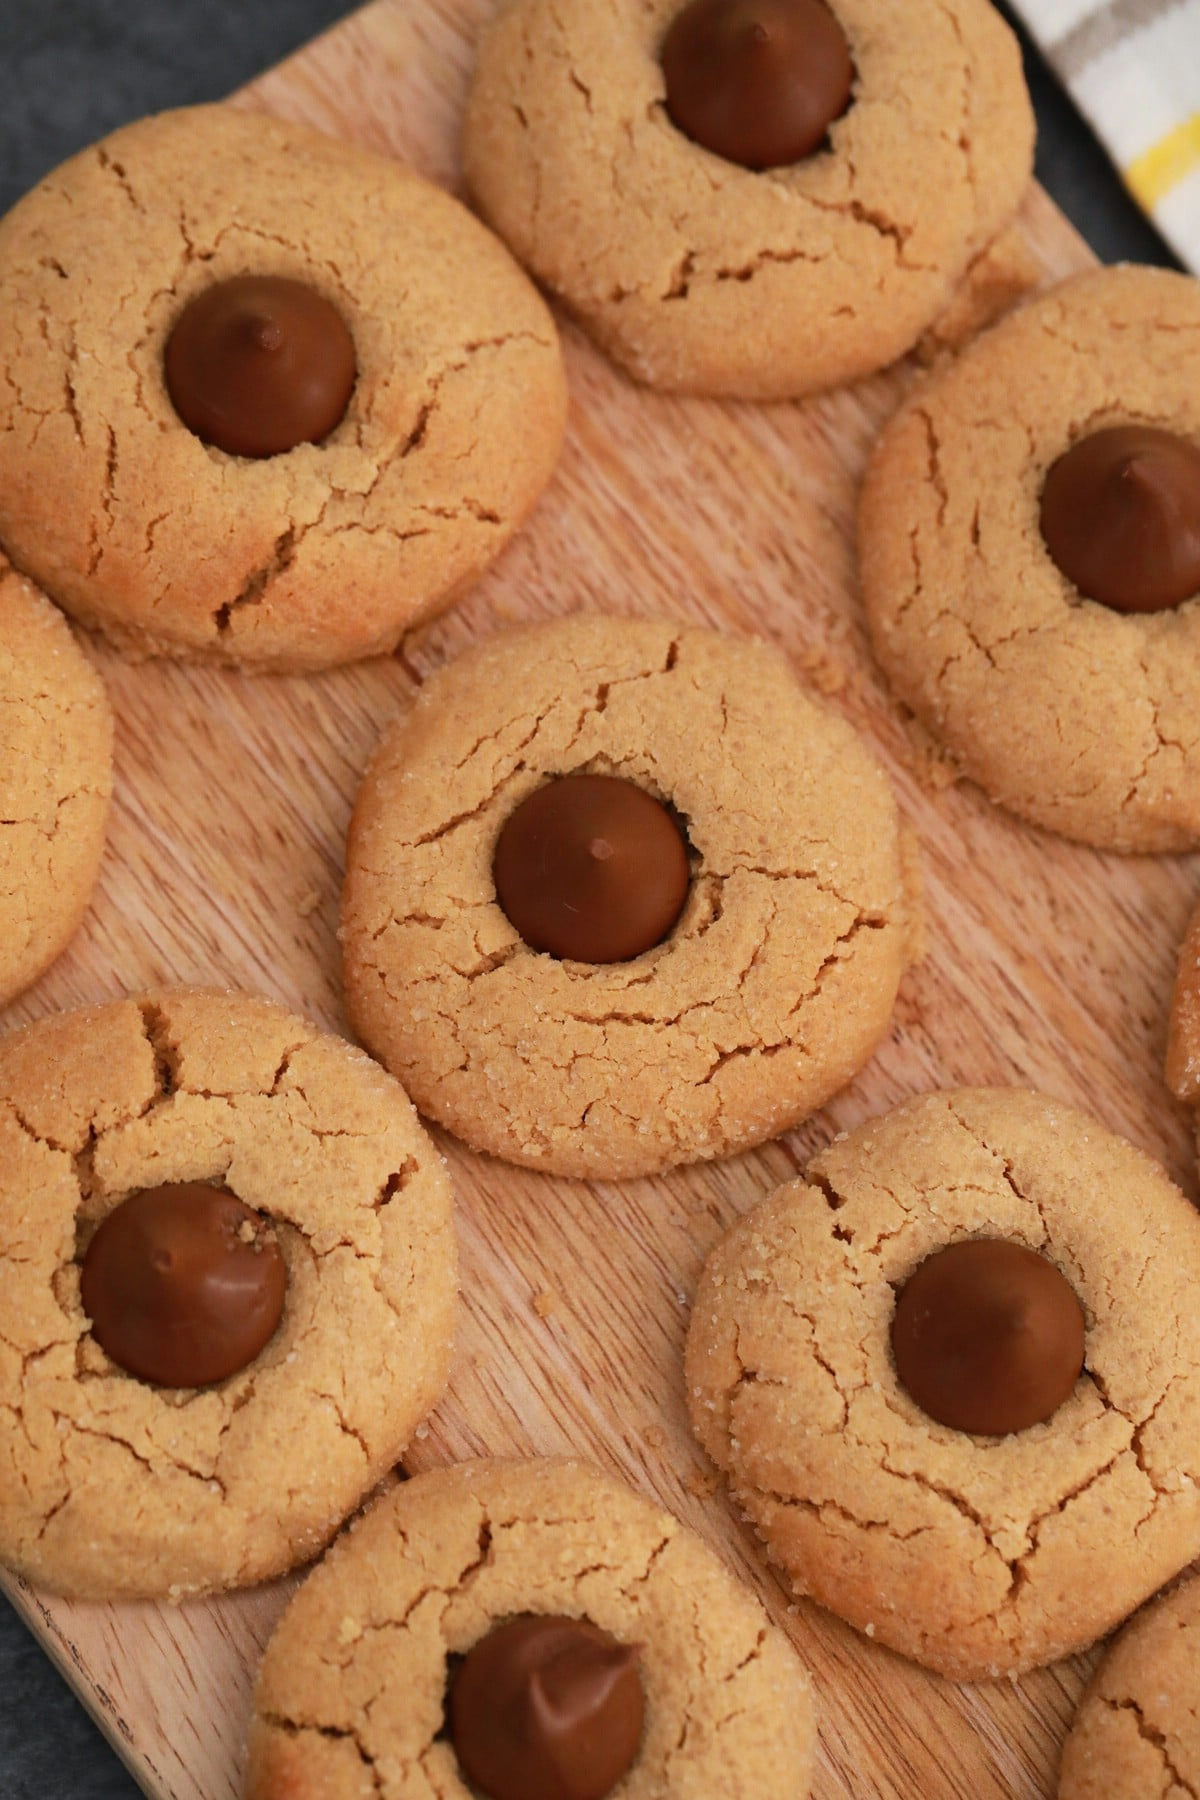 Cookies with hersheys kisses on wooden counter